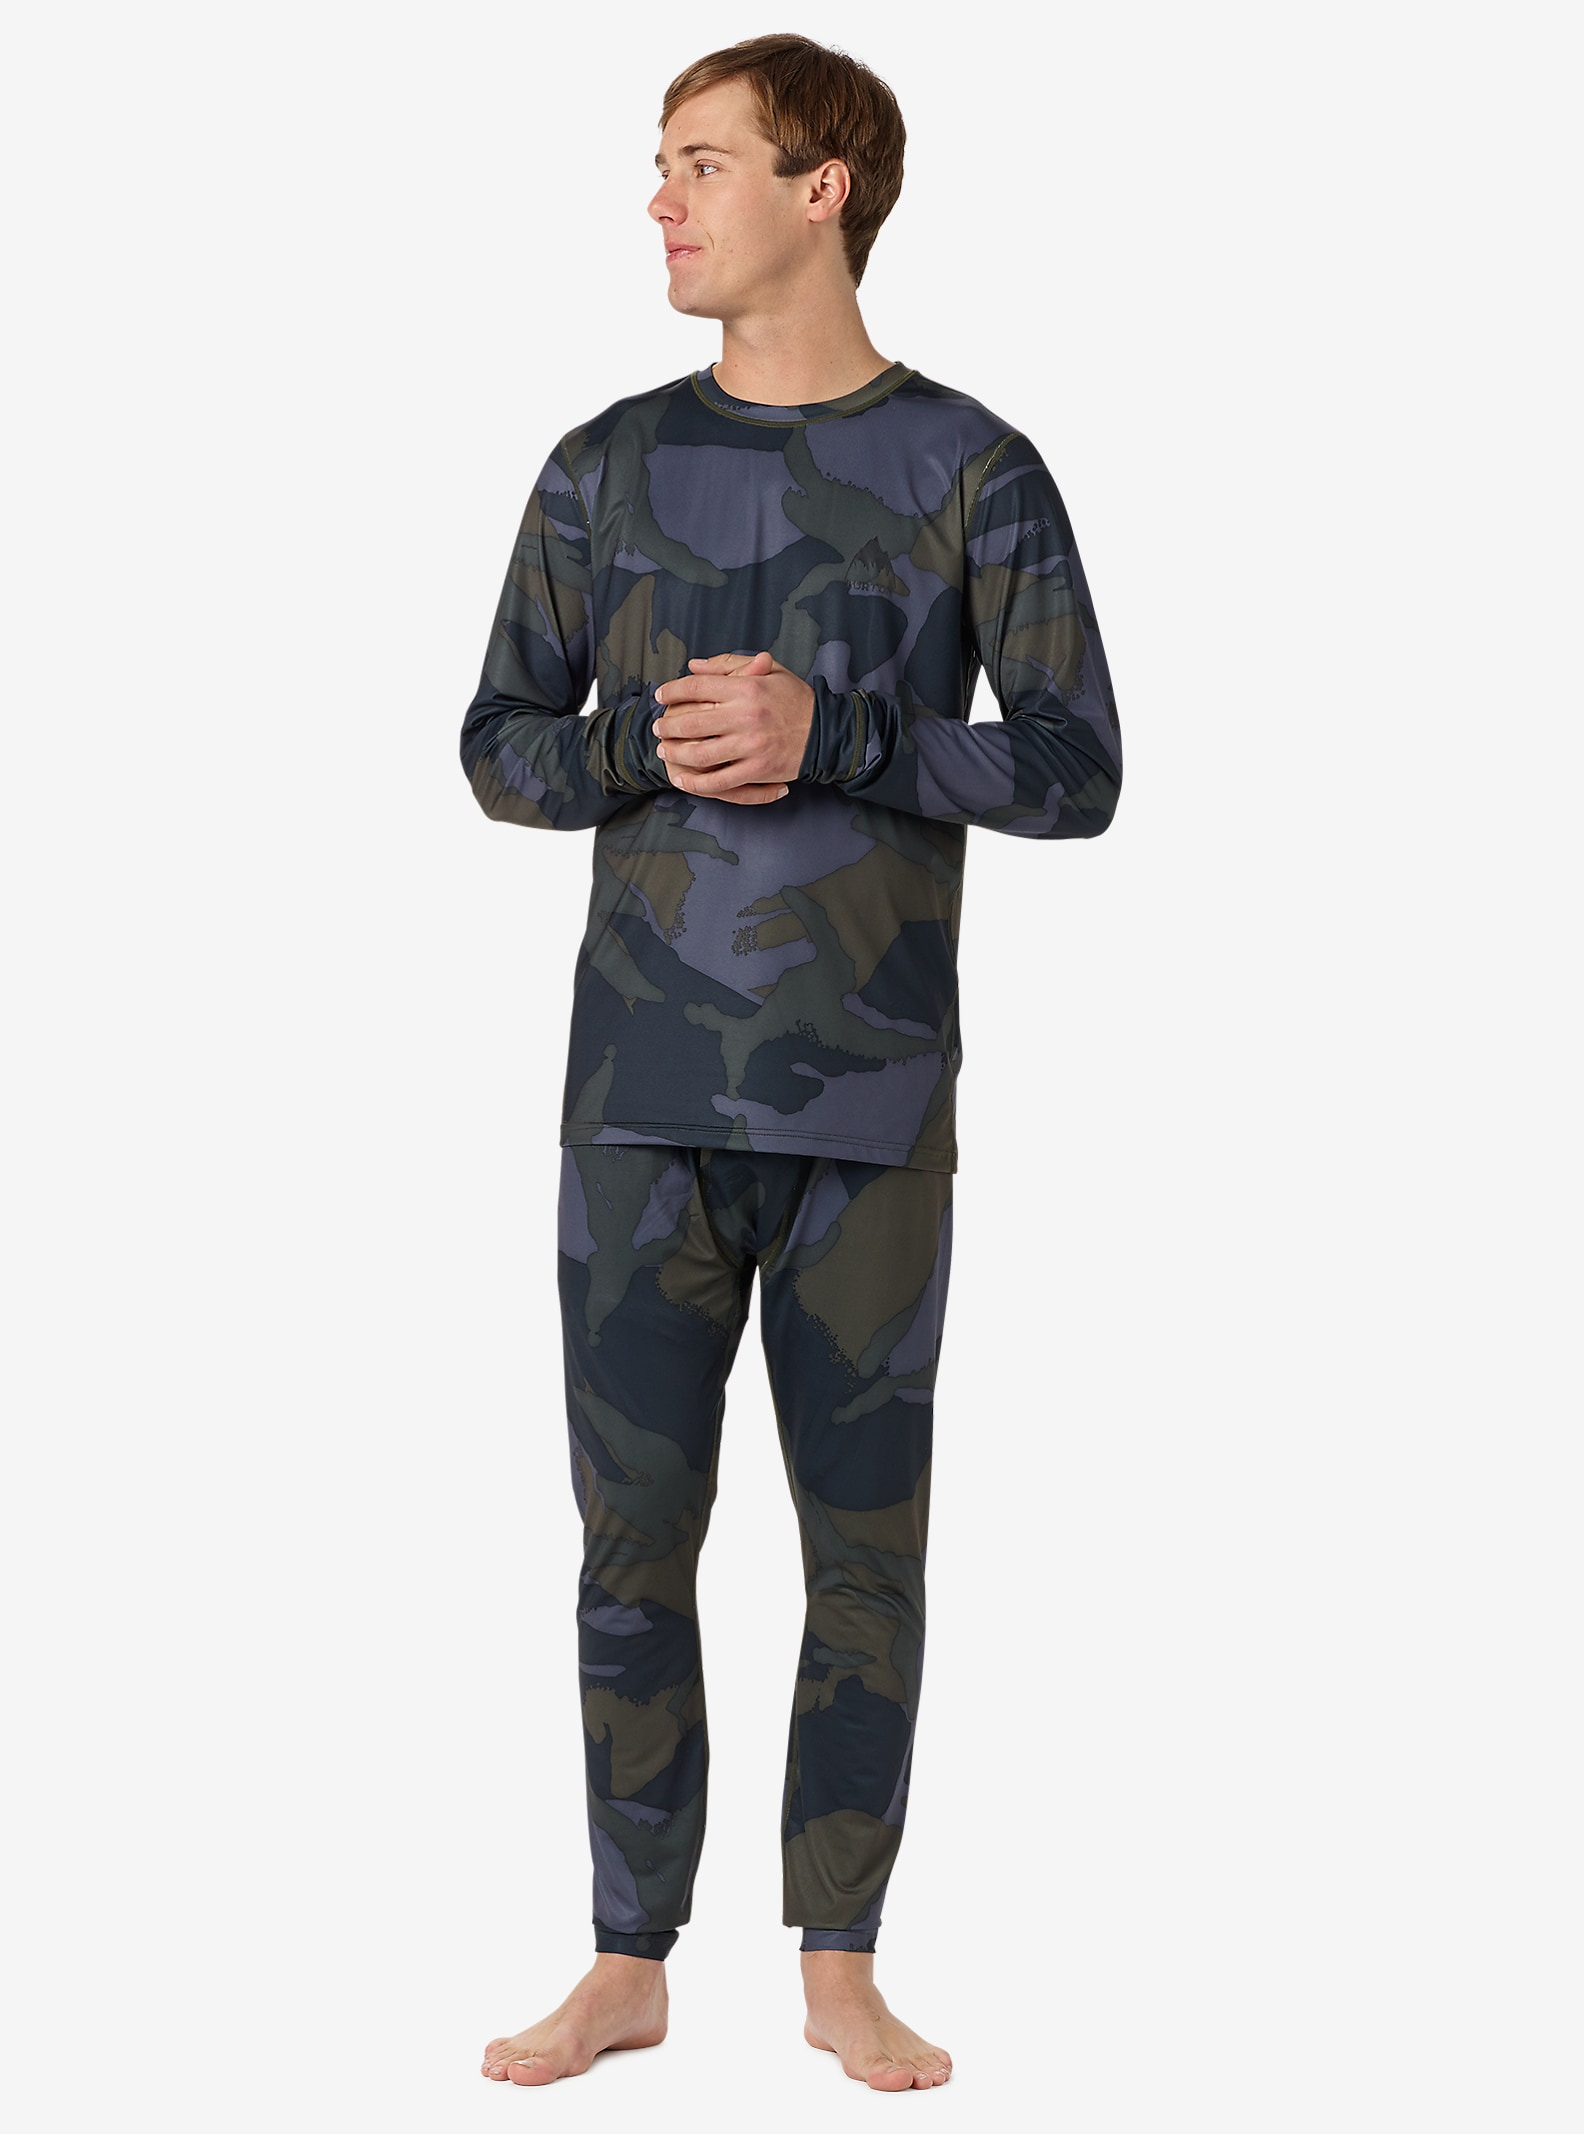 Burton Lightweight Base Layer Pant shown in Beetle Derby Camo